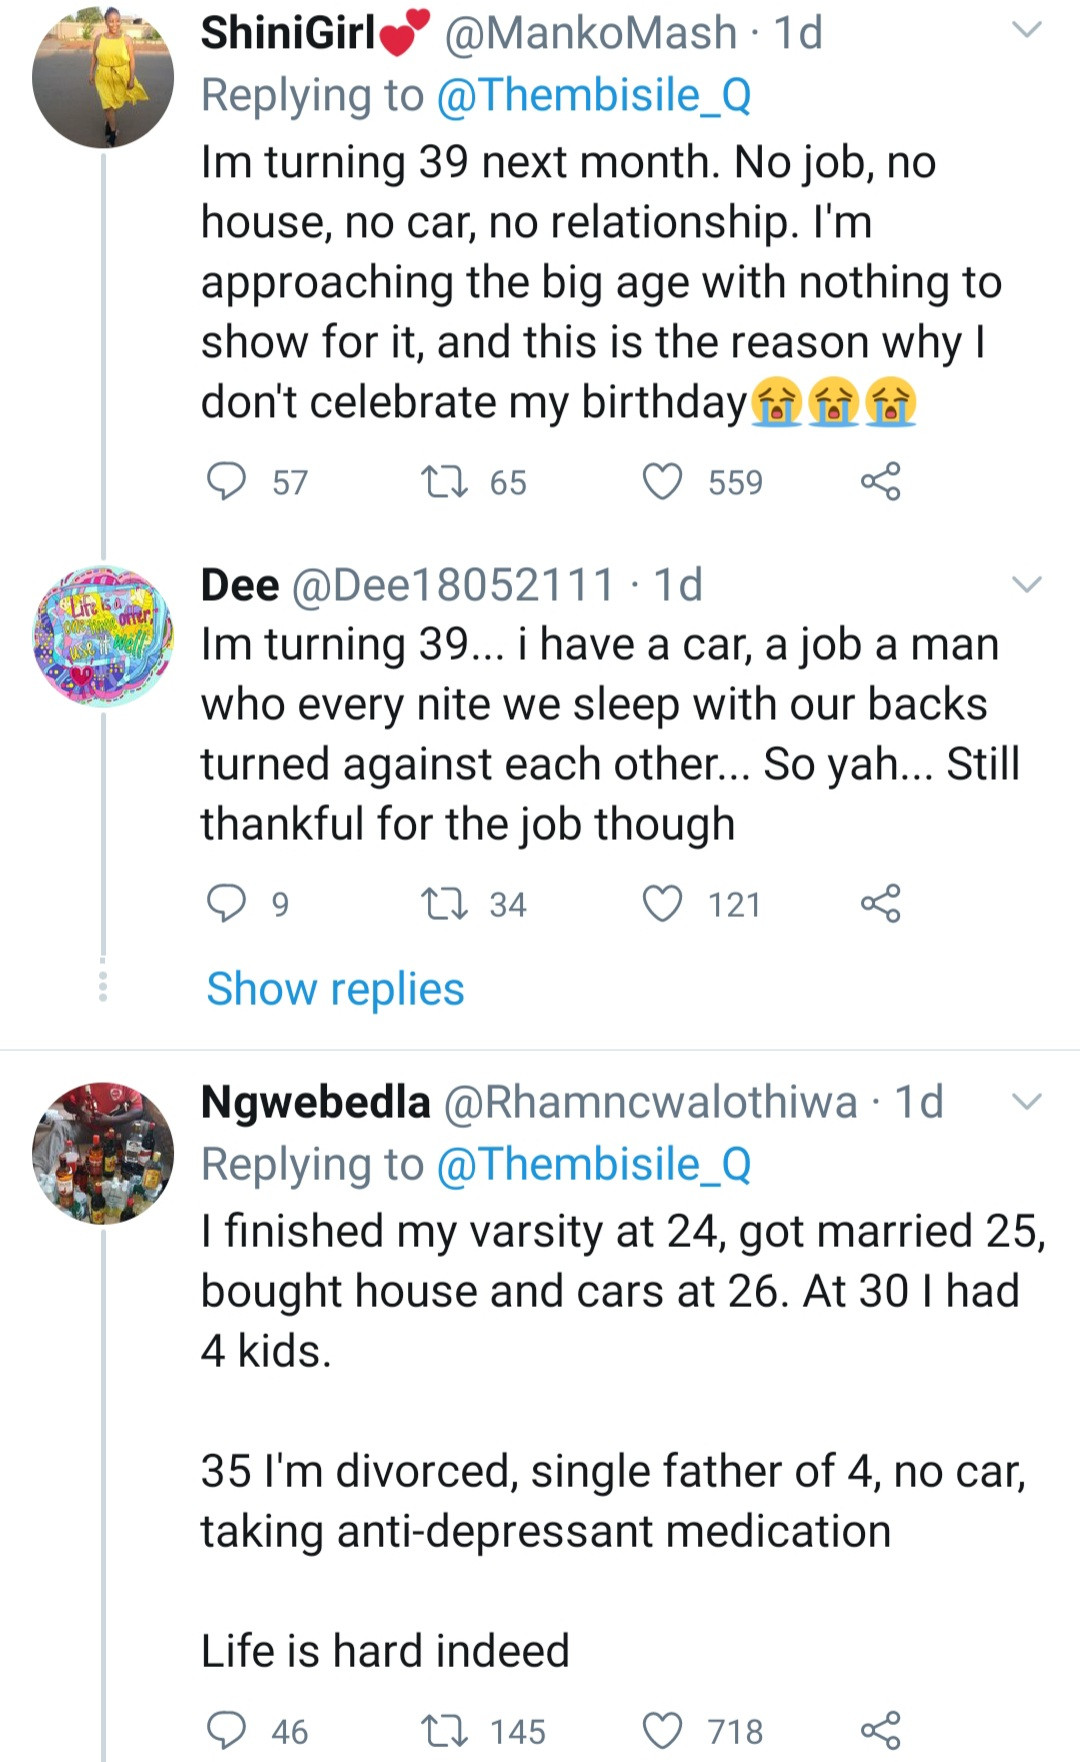 Twitter users reveal how hard life has been for them